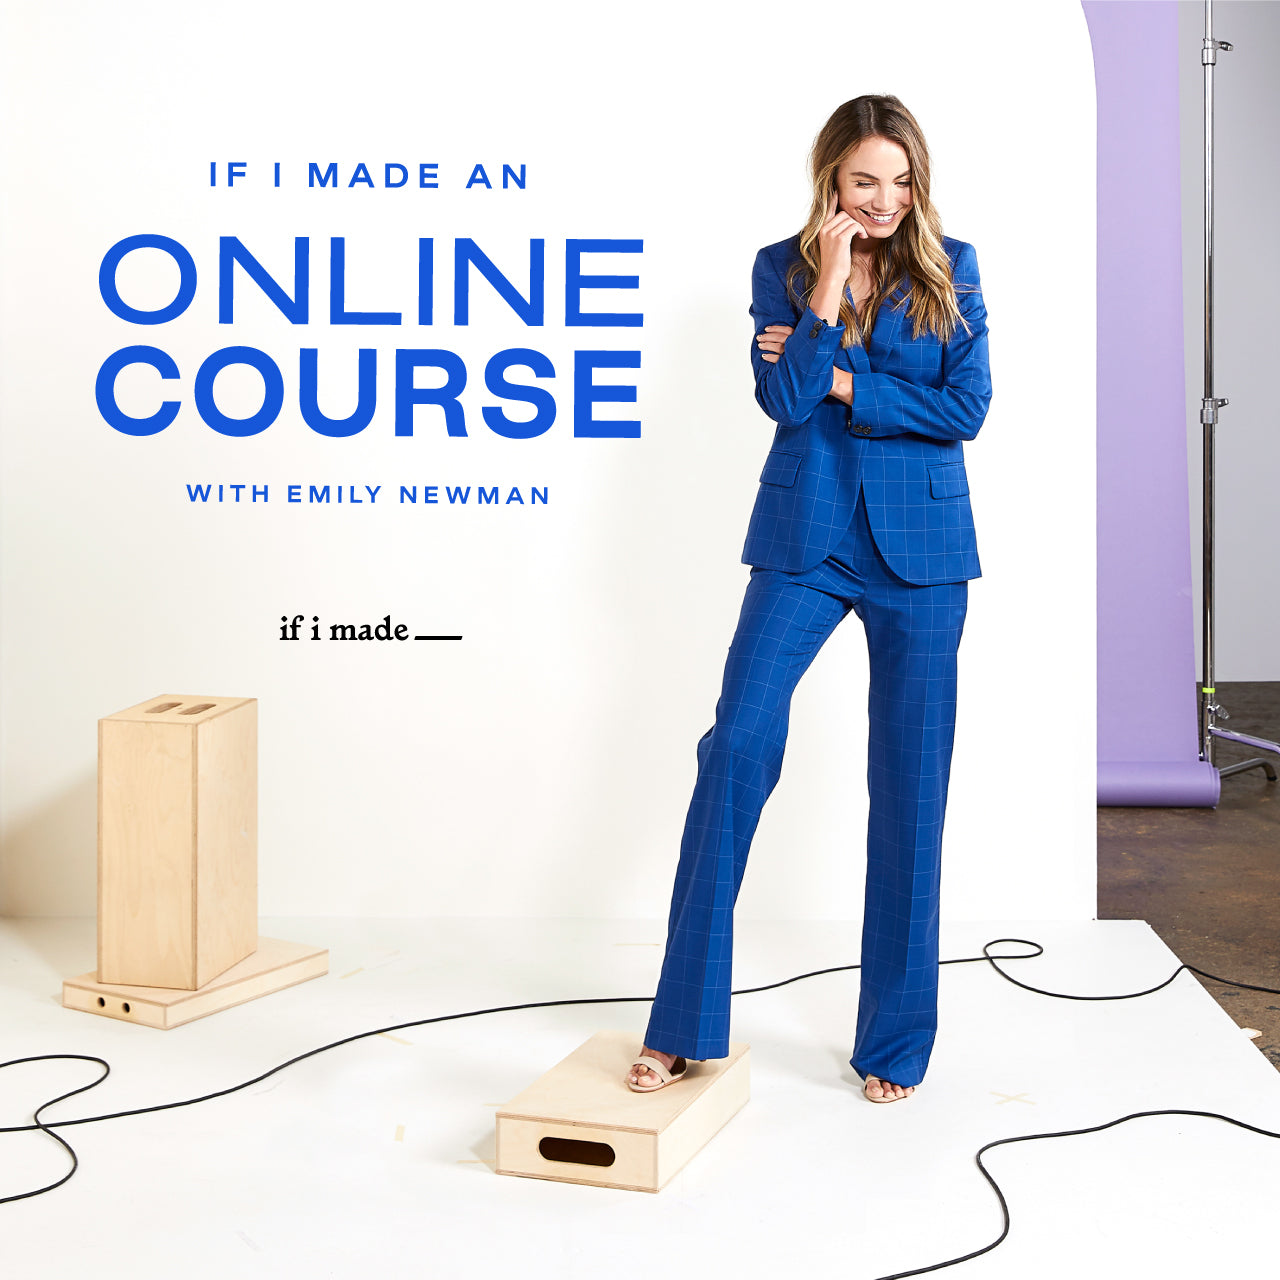 If I Made an Online Course (ROP)